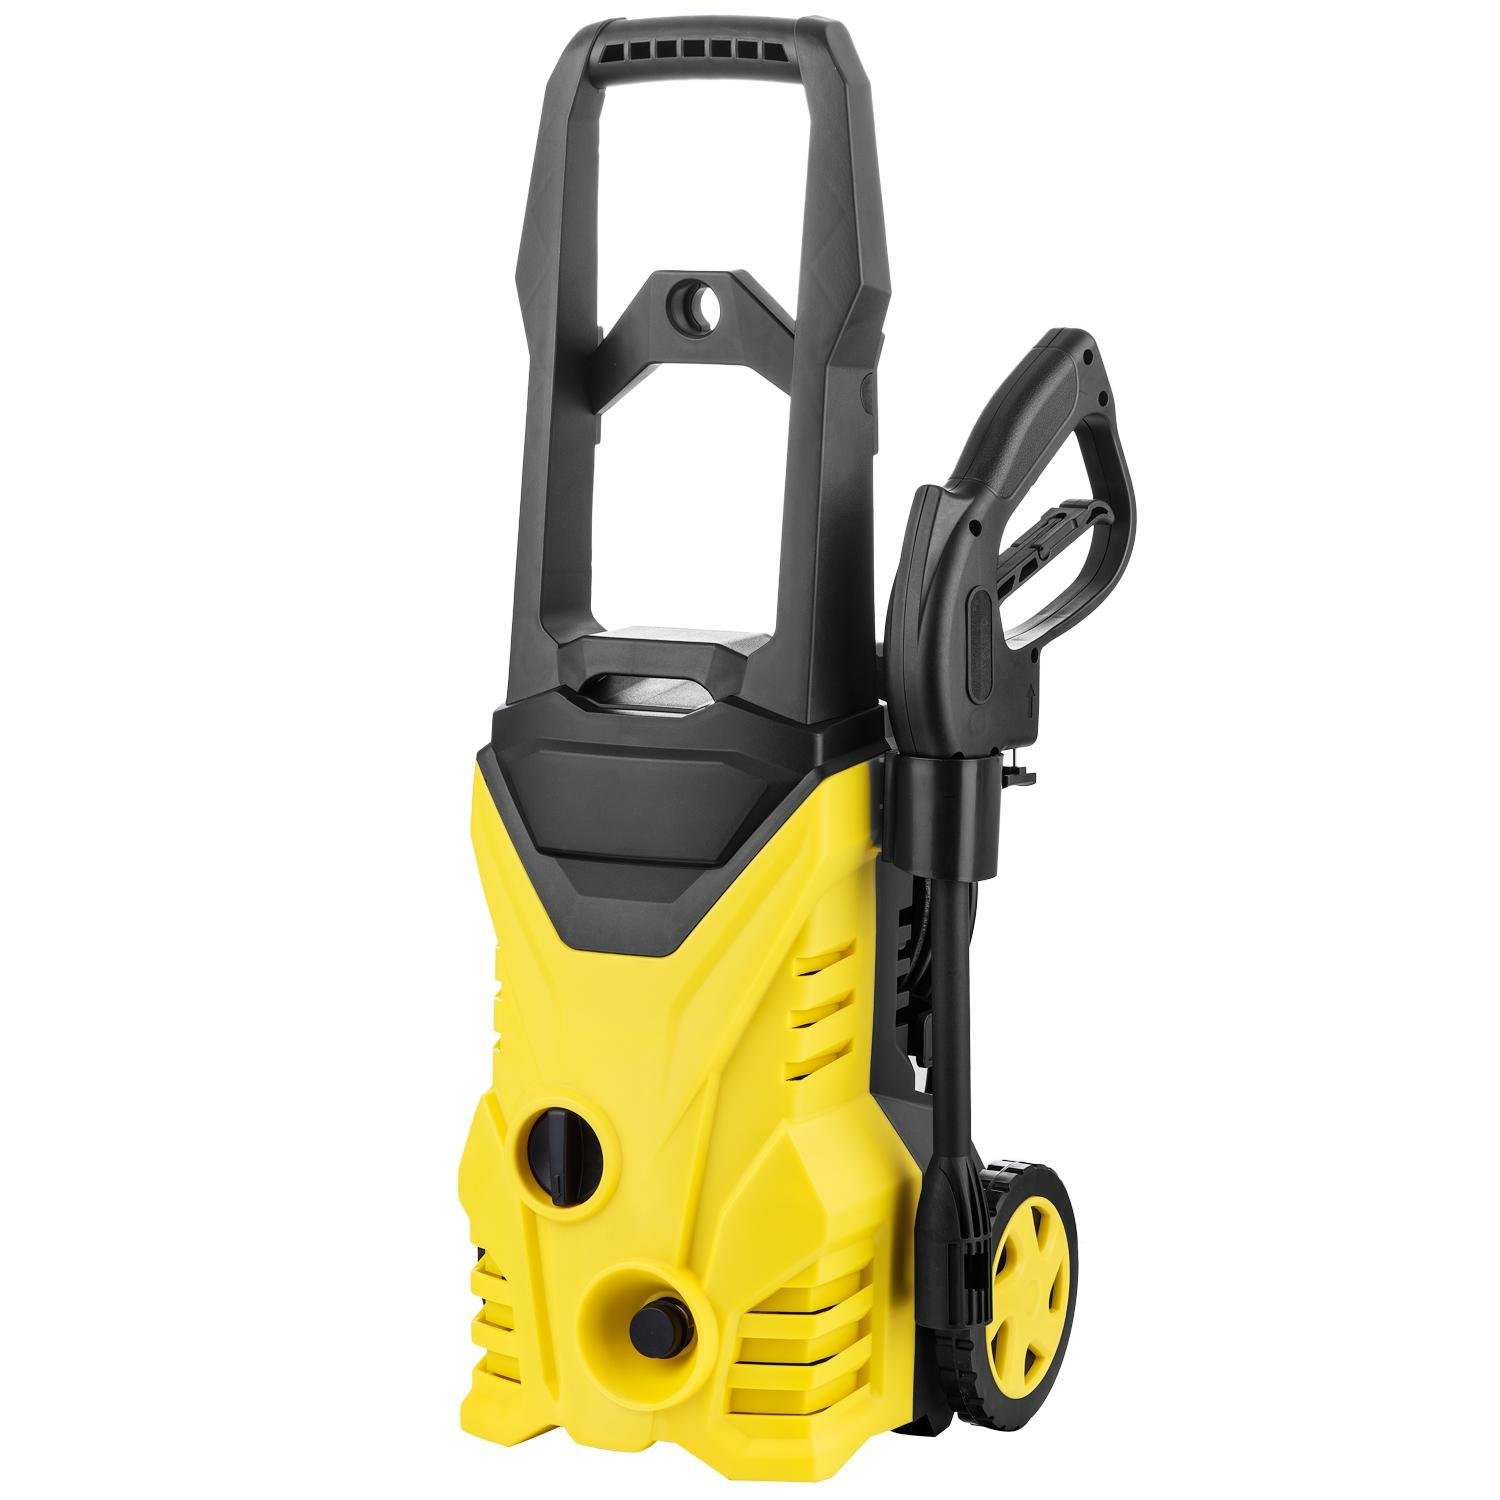 Cosway Electric Pressure Washer with Power Hose Nozzle Spray Airbrush/Hose Reel,2000 PSI 1.4 GPM-Yellow[US STOCK]